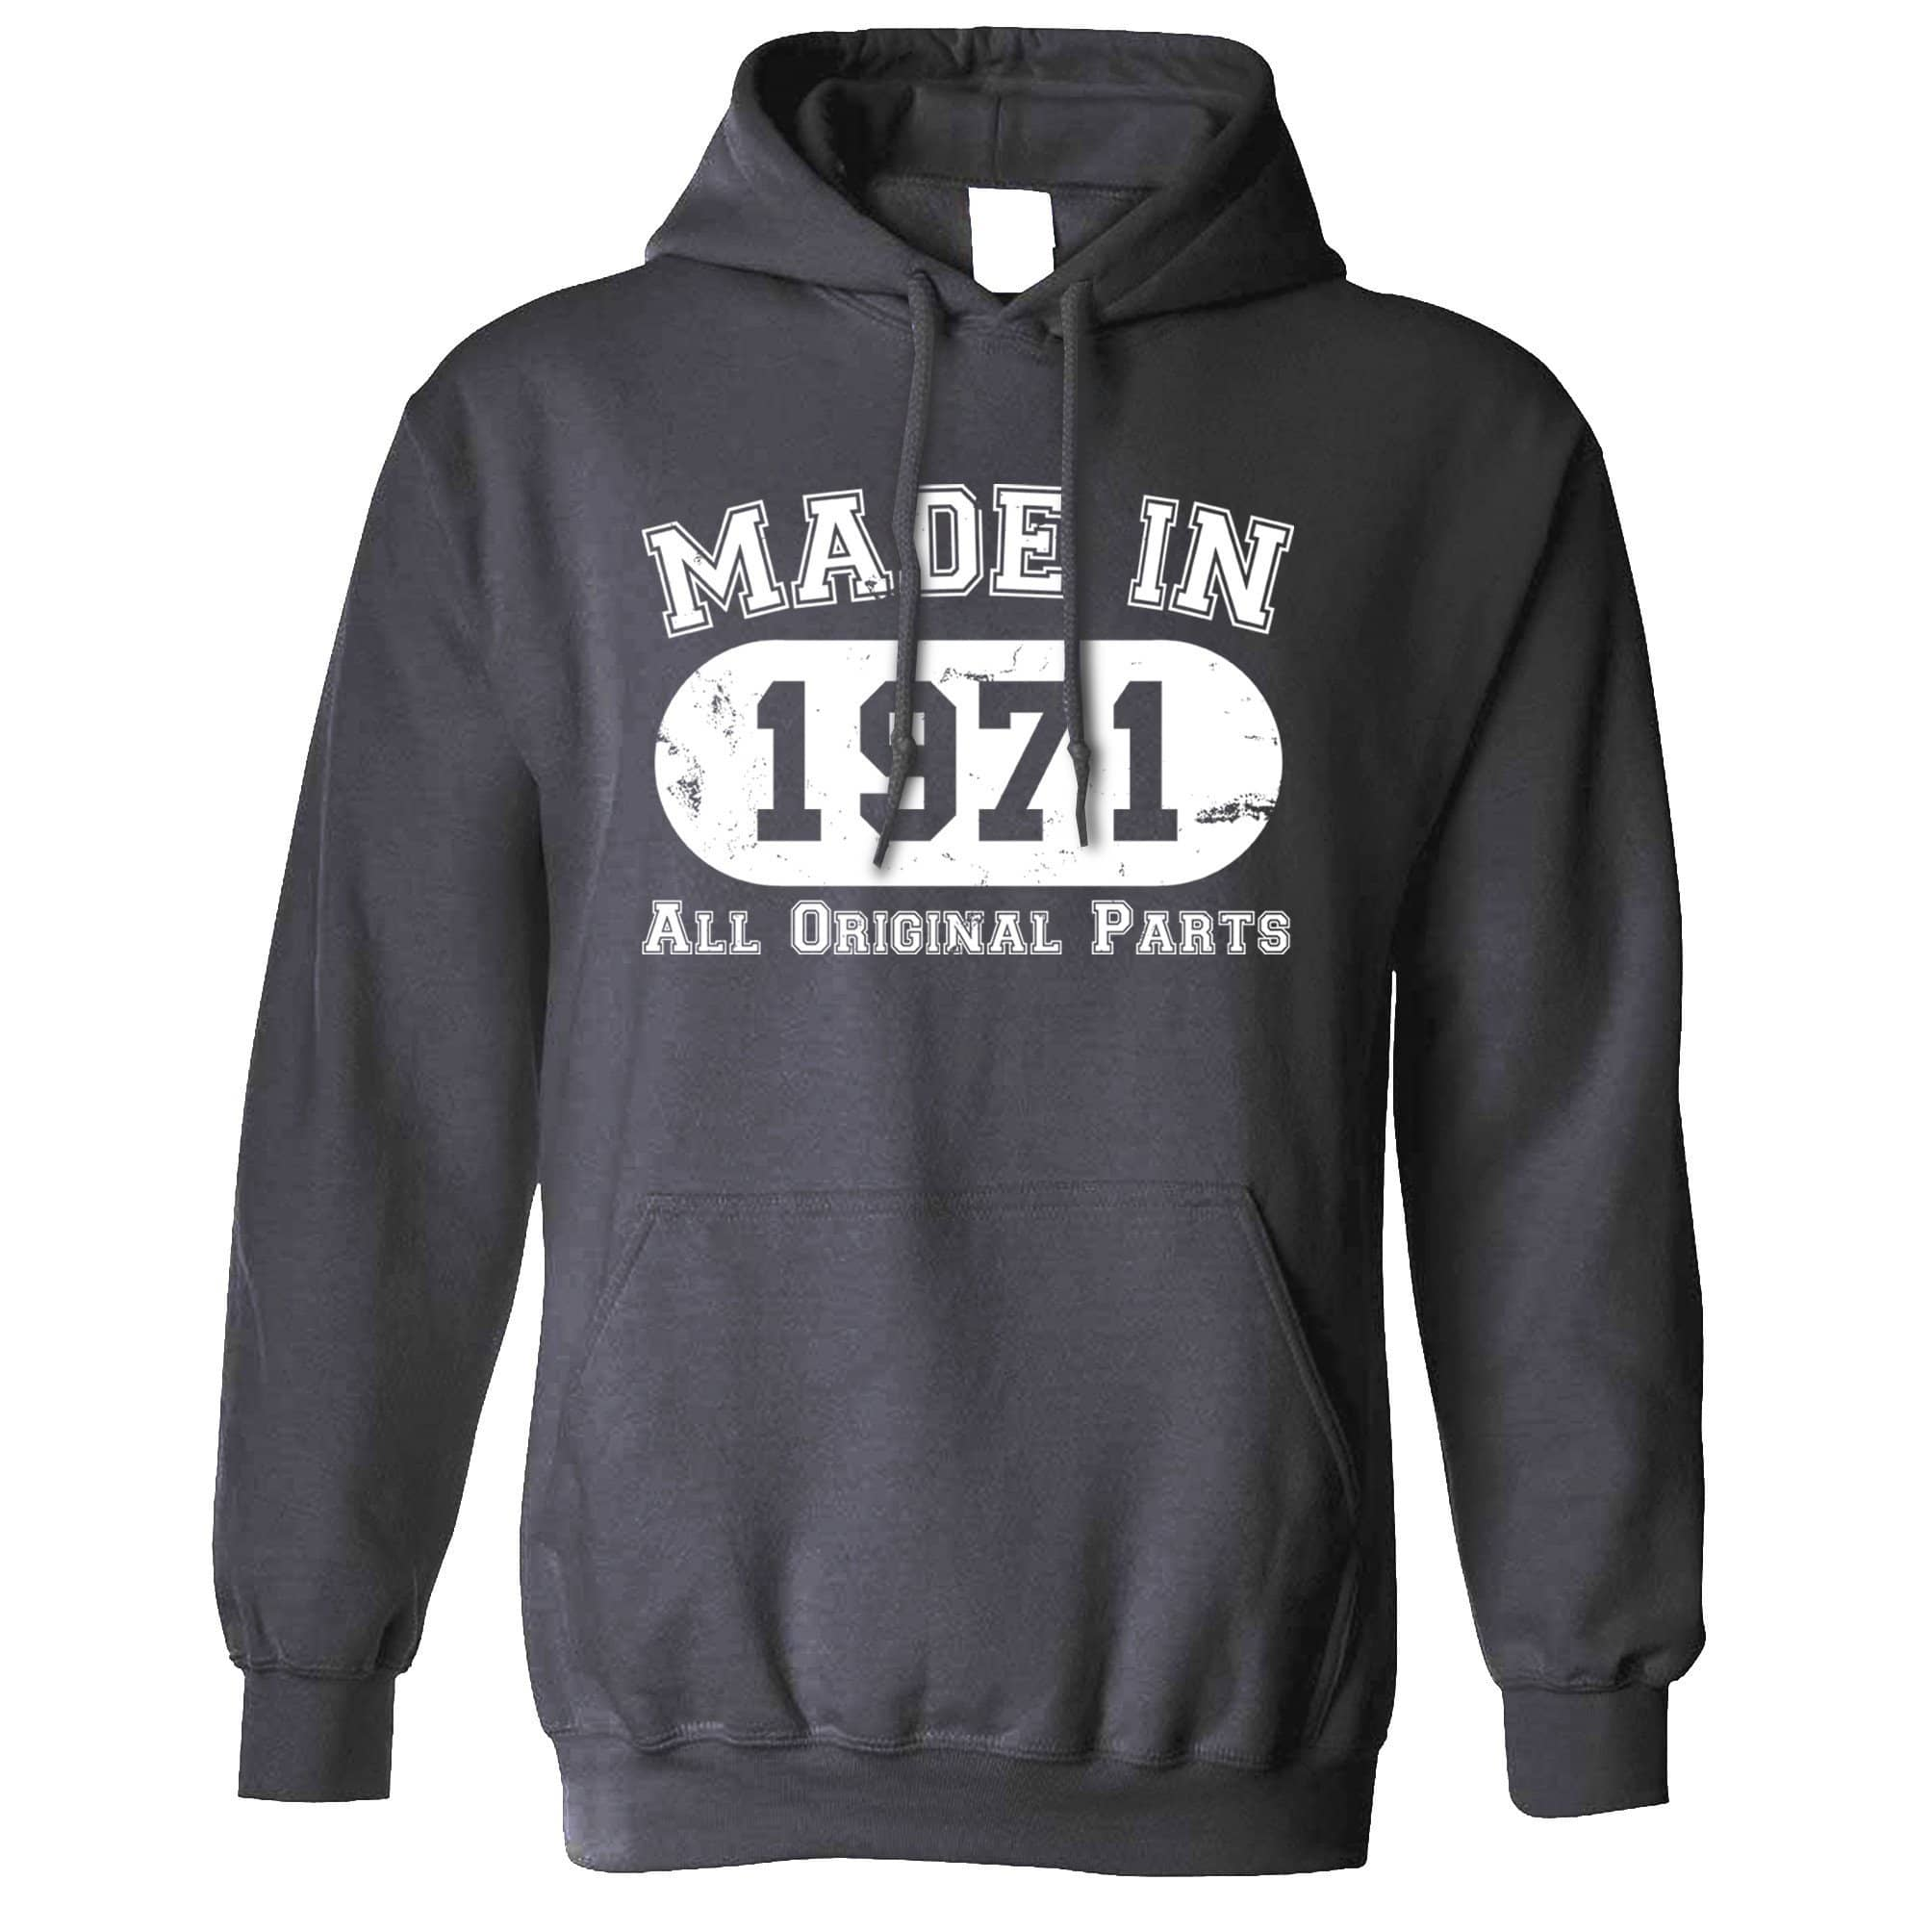 Made in 1971 All Original Parts Hoodie [Distressed]